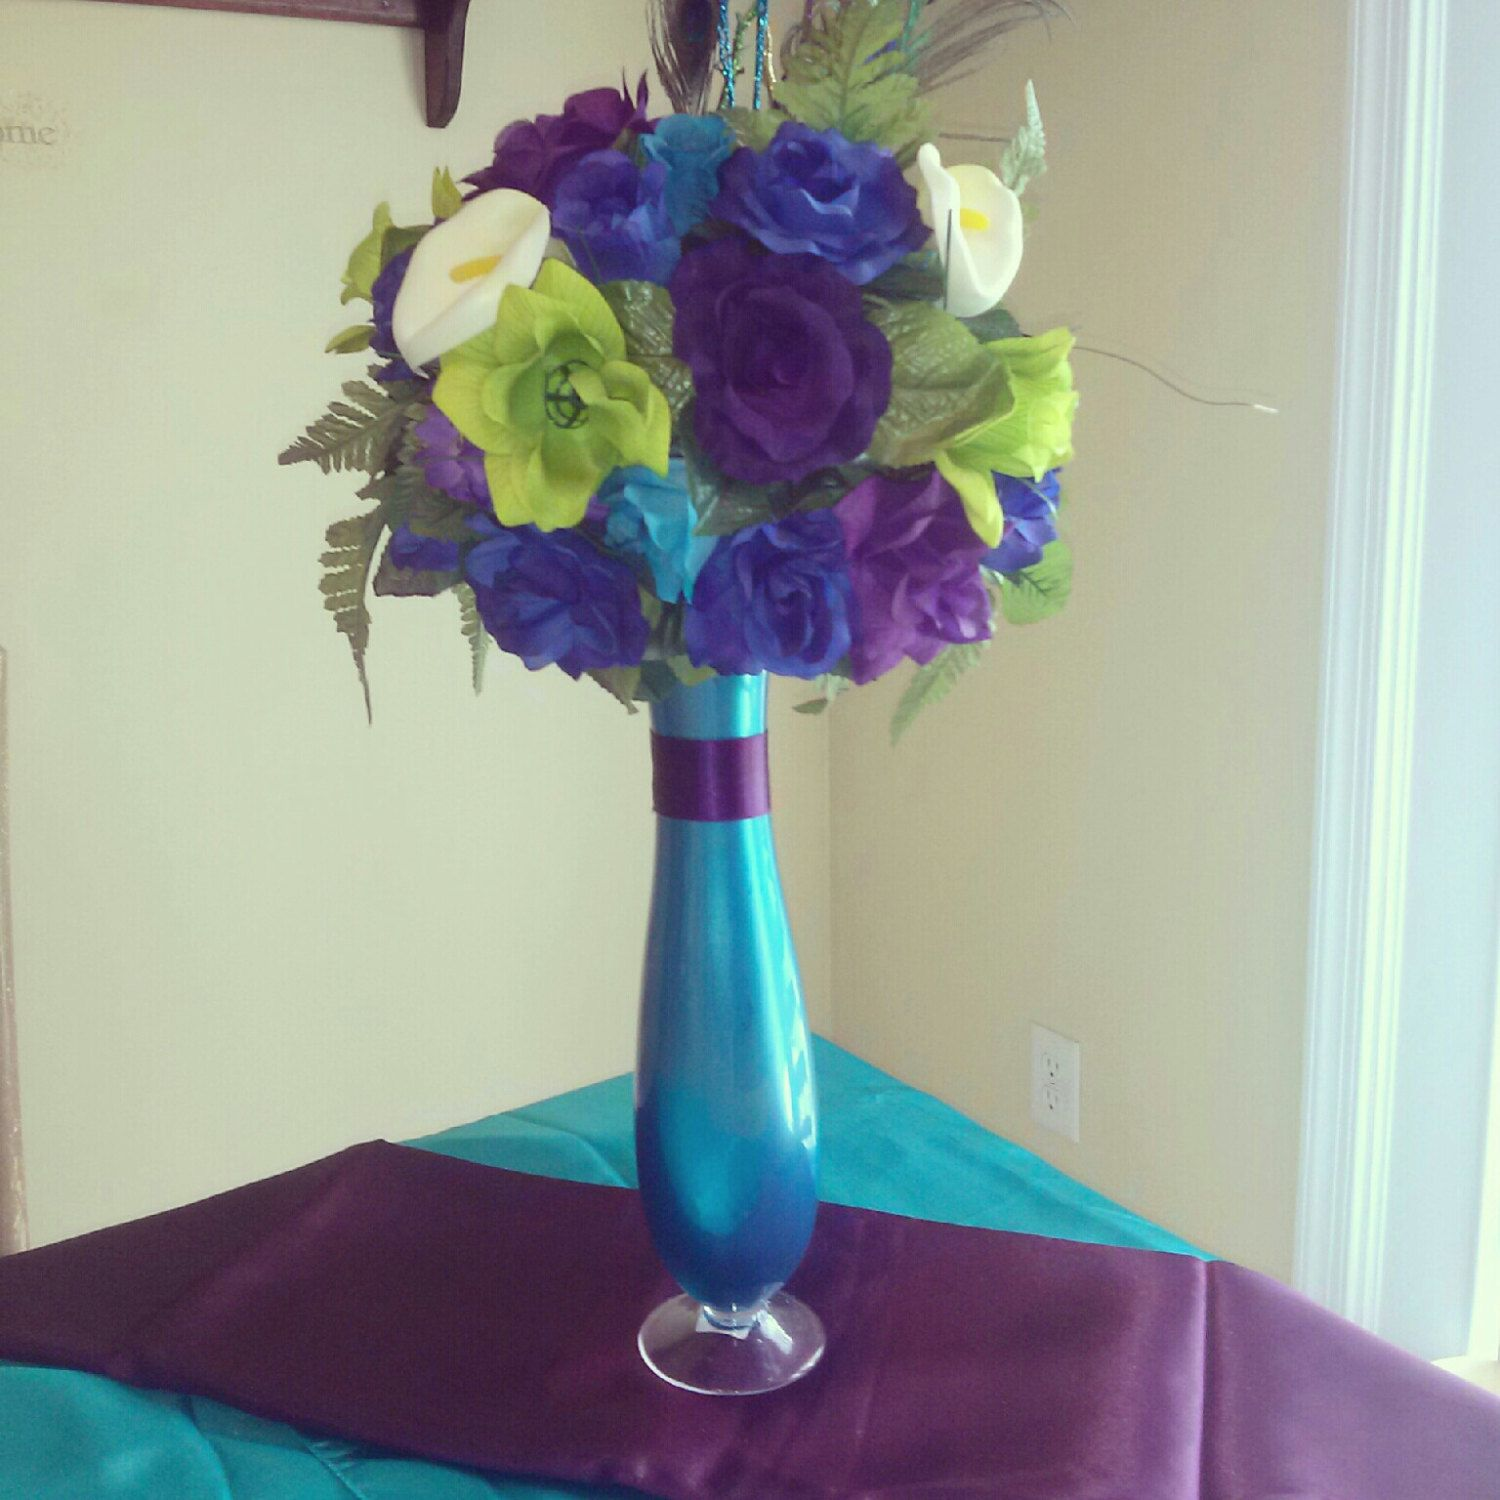 Peacock Wedding Ideas Etsy: Peacock Wedding Centerpiece By KreativeCreations11 On Etsy